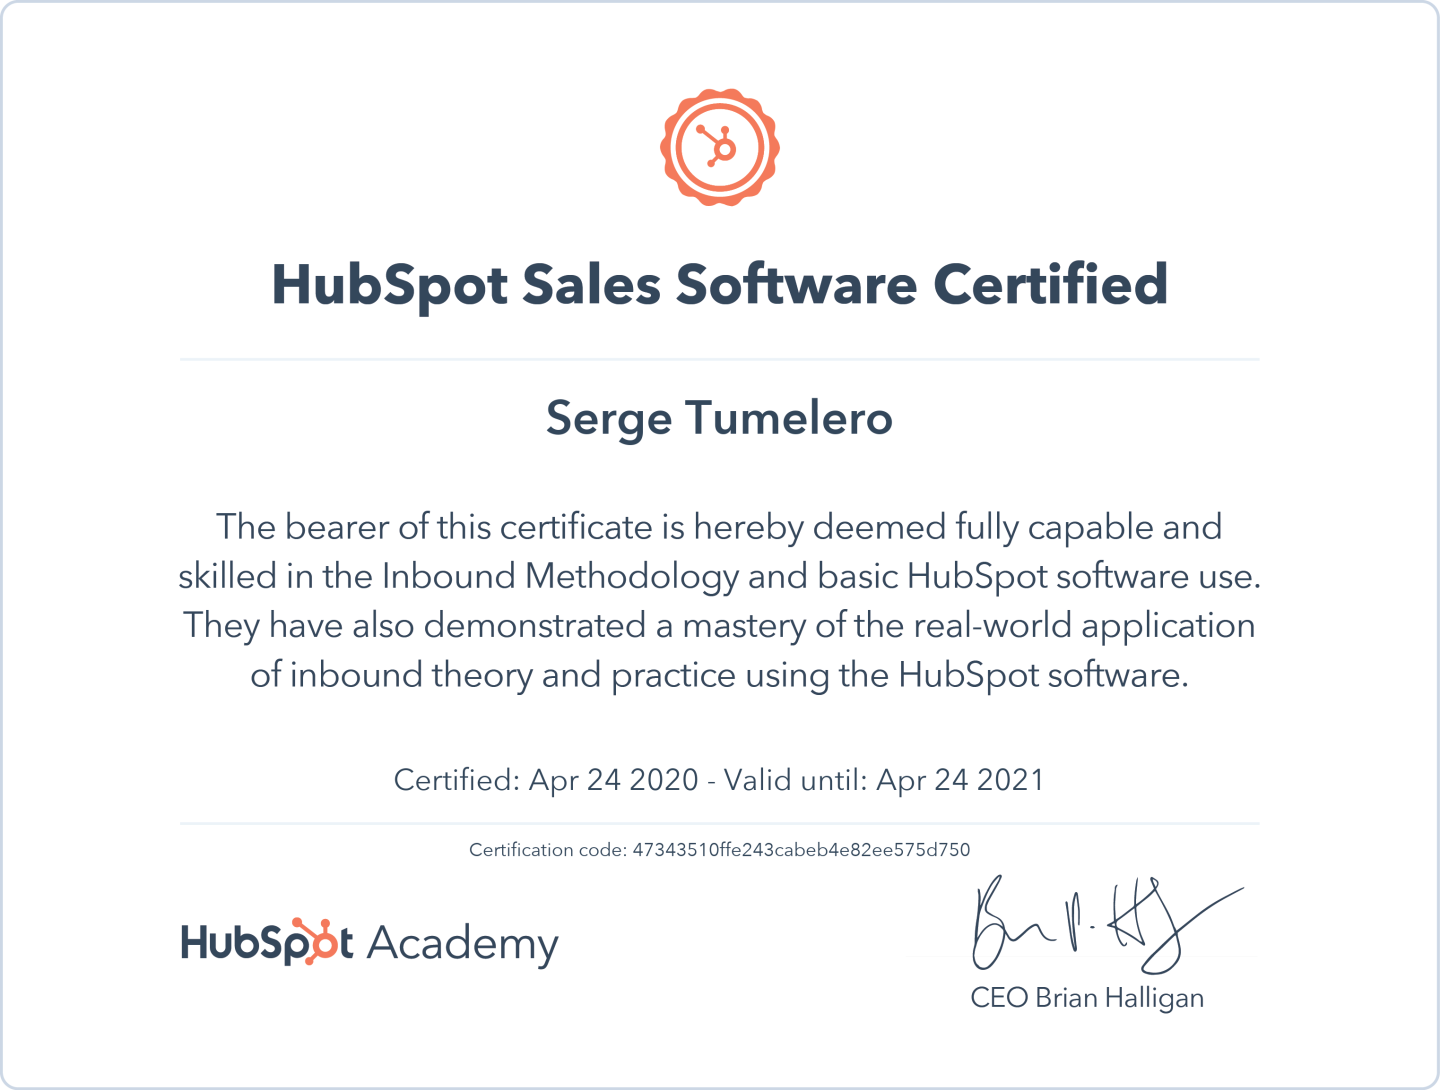 Serge Tumelero is HubSpot Inbound Marketing - Sales Software Certified